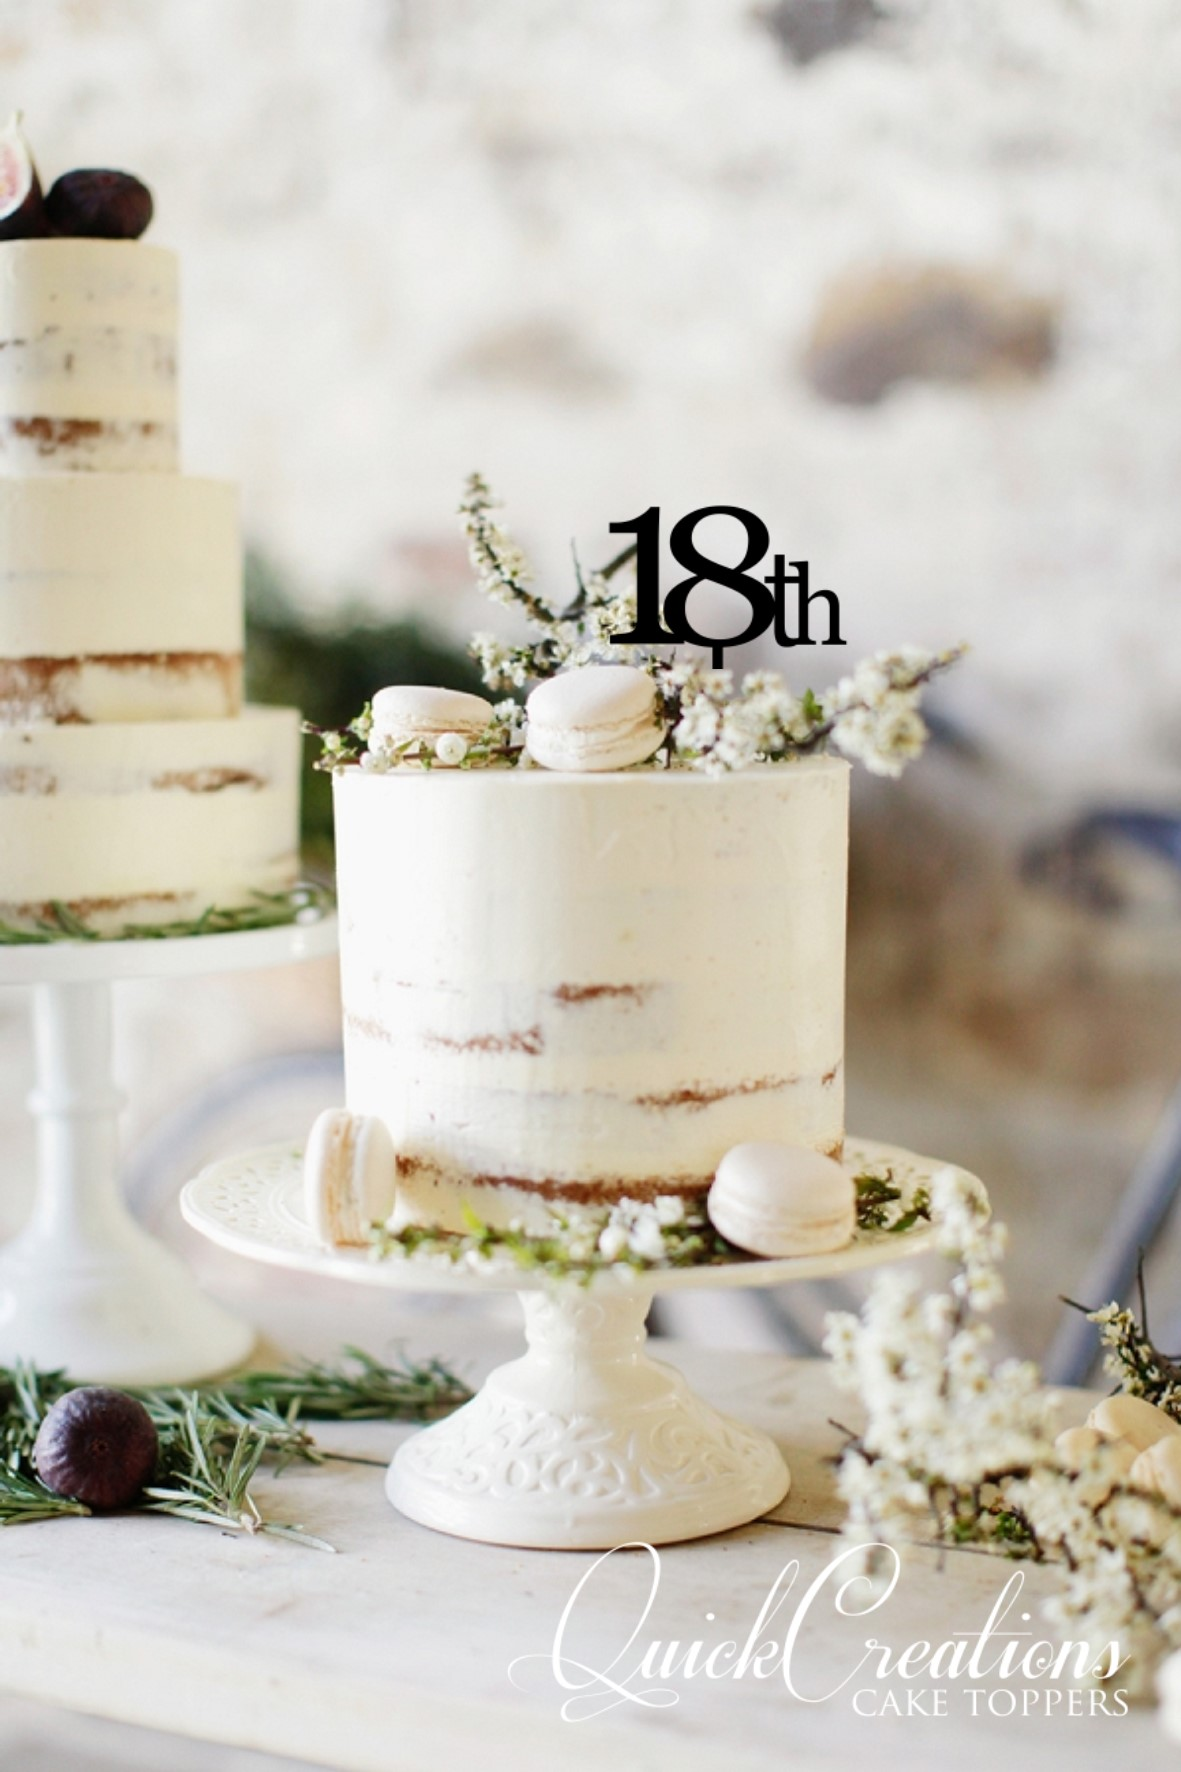 Quick Creations Cake Topper - 18th